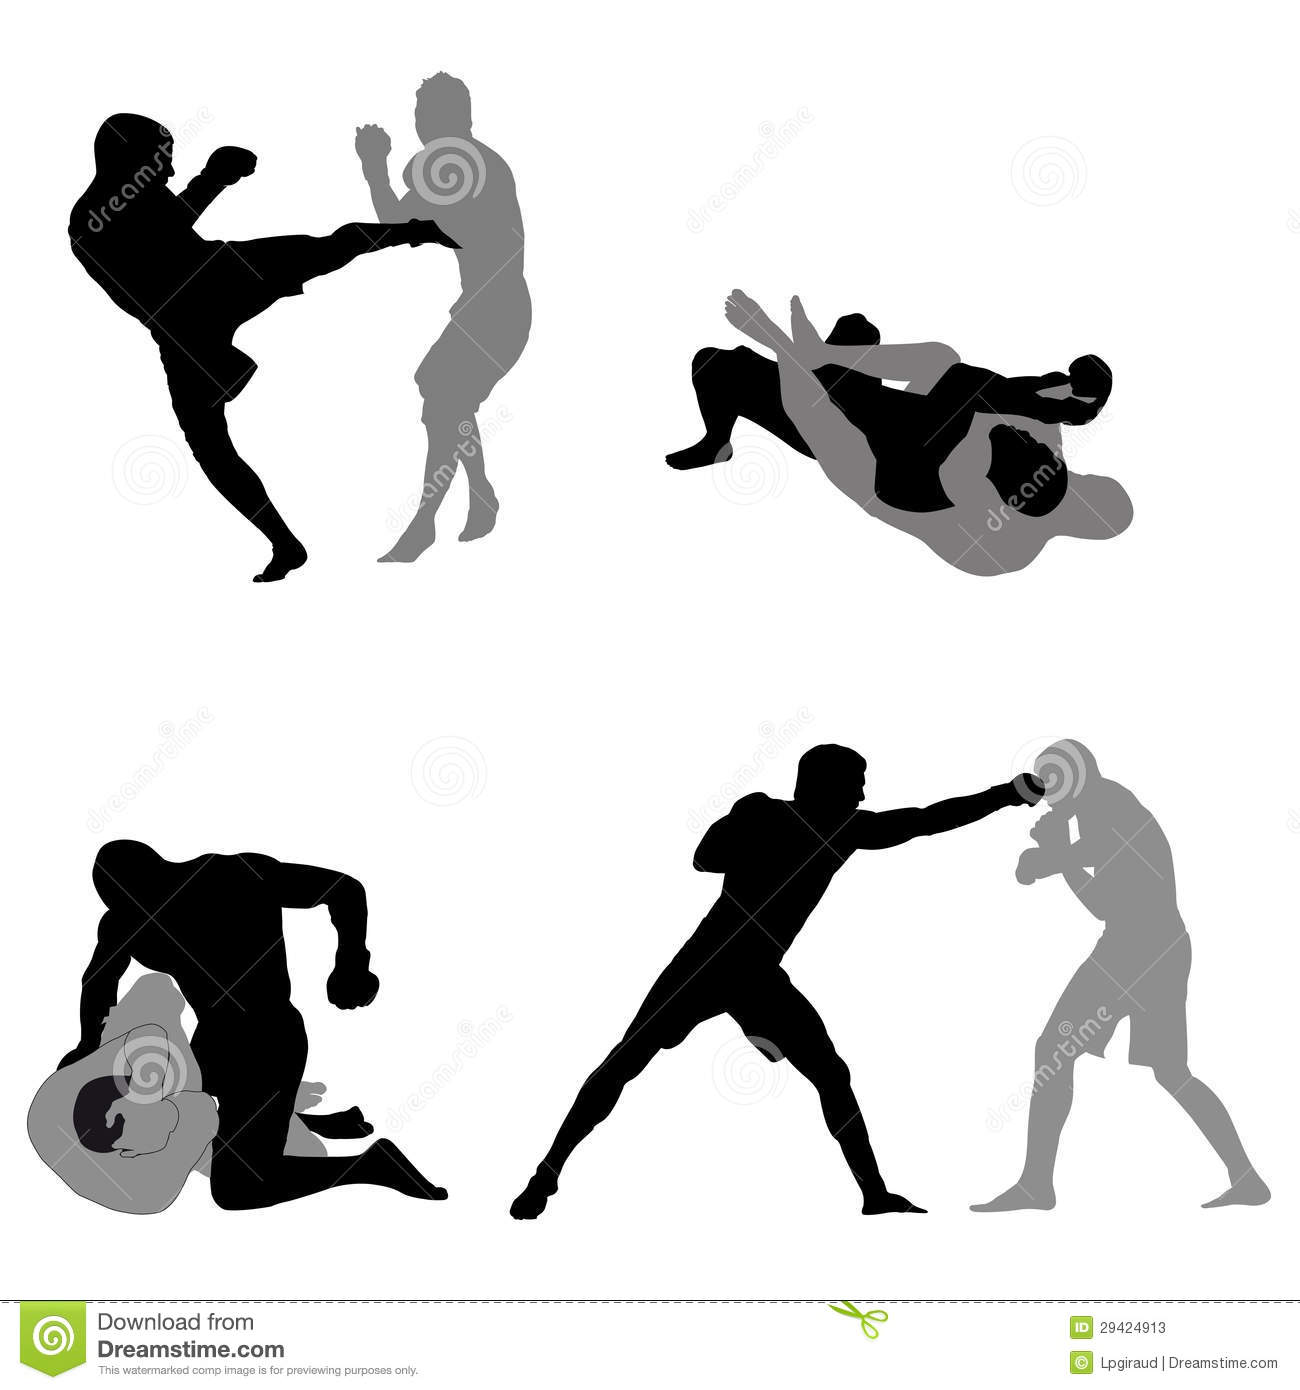 how to learn ufc fighting moves